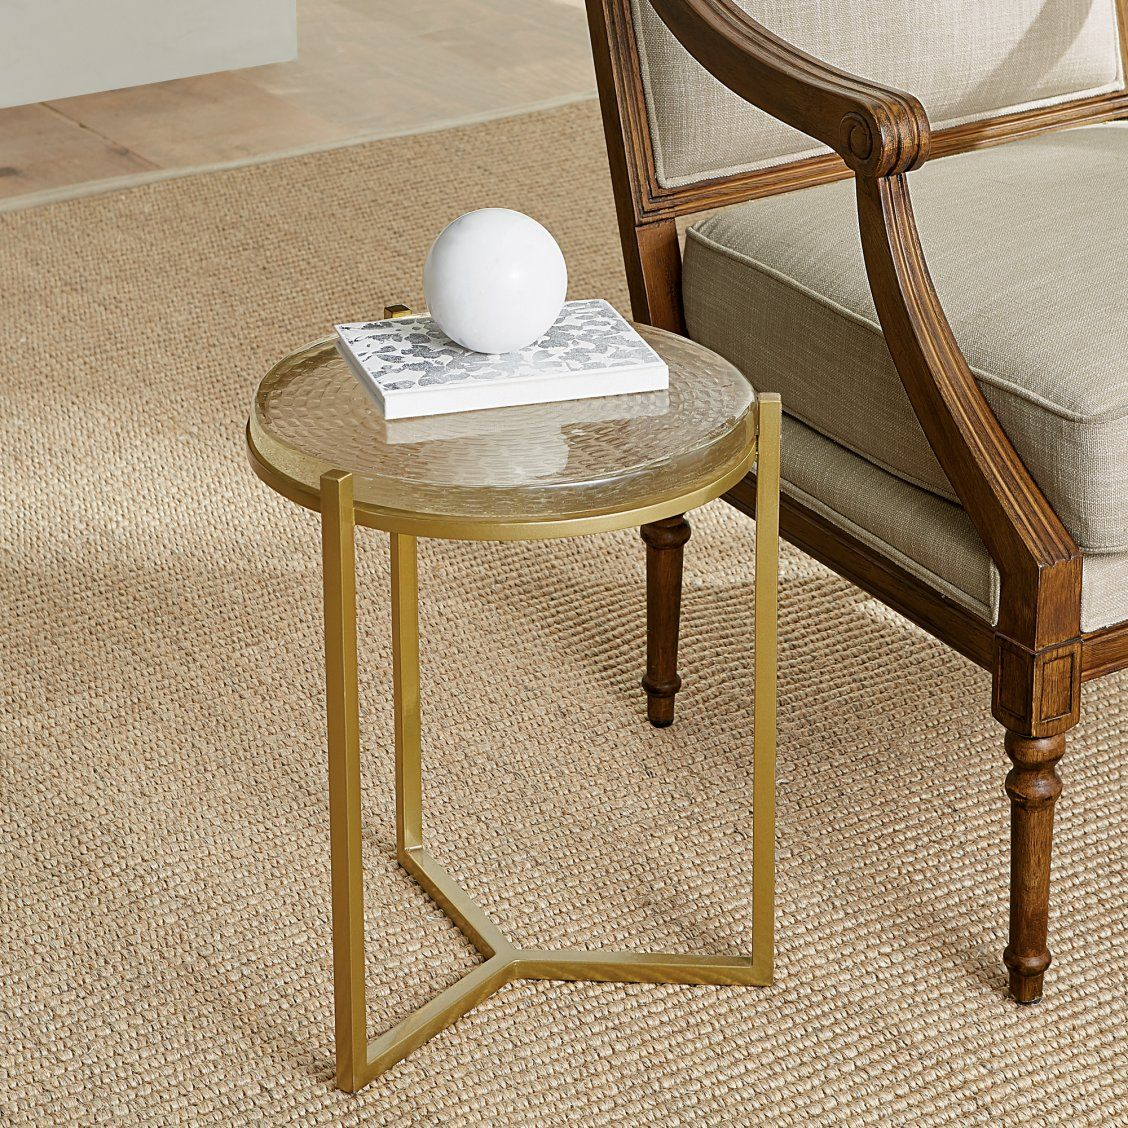 Blair Gold Accent Table Gold Accent Table Side Table Accent Table